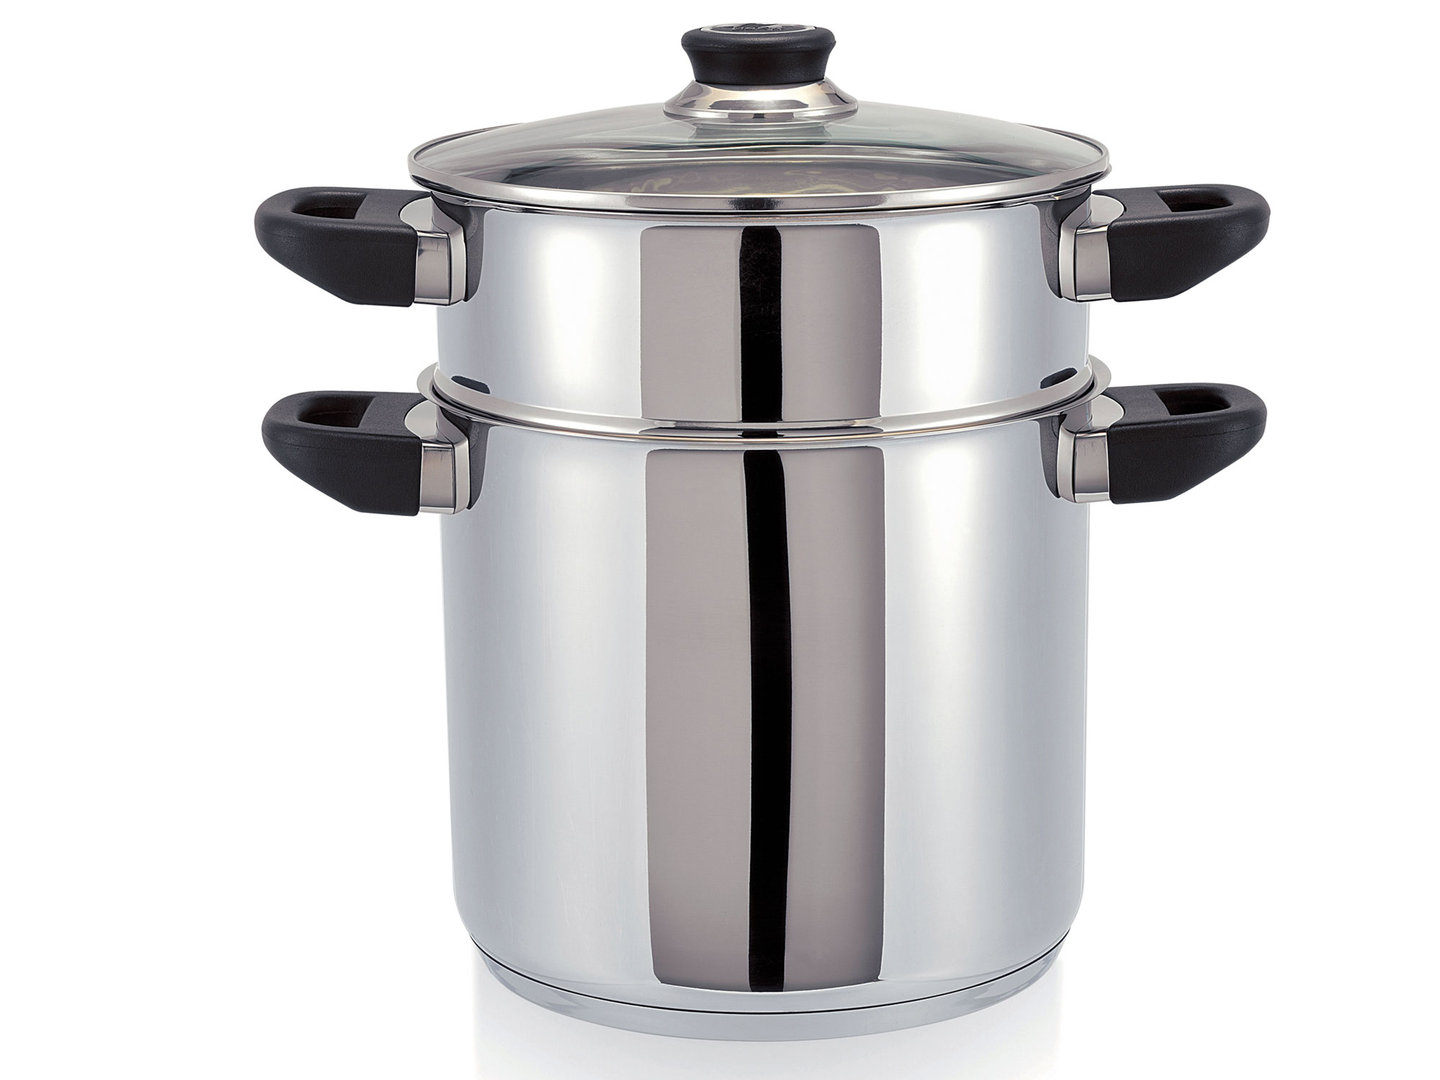 BEKA Couscous steamer POLO 24 cm stainless steel Couscoussier